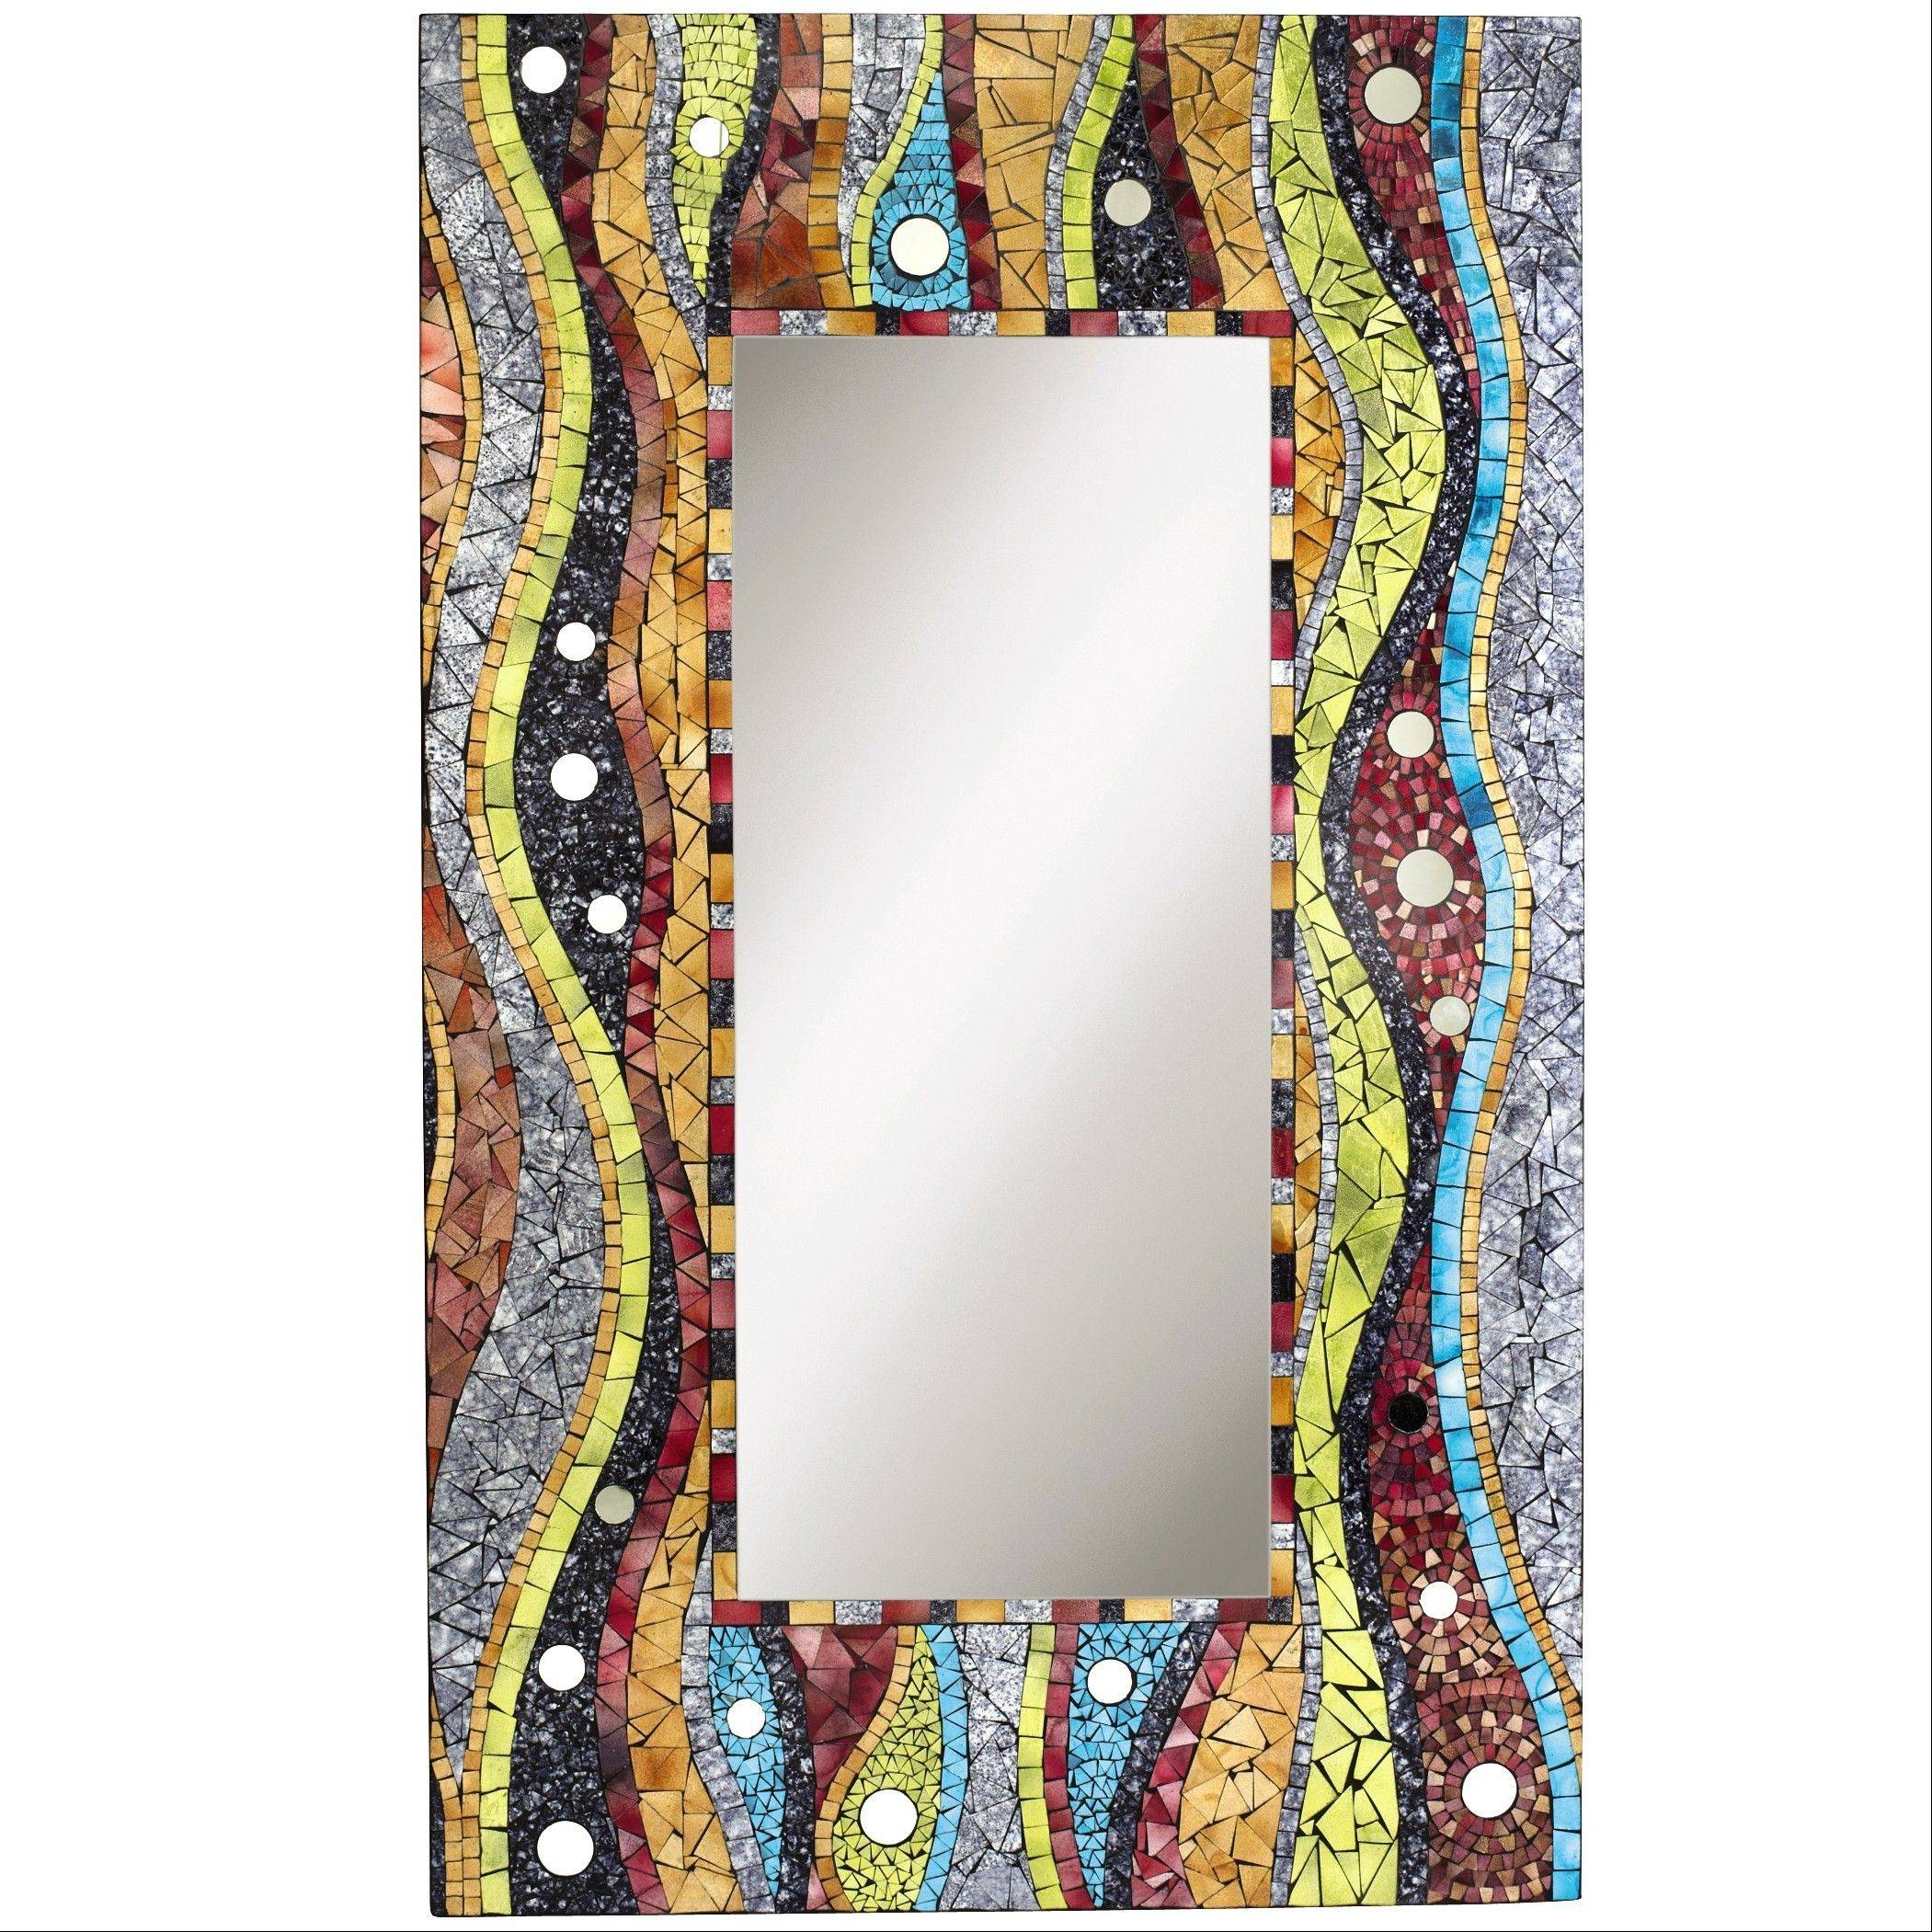 This mosaic-framed mirror by Pier 1 Imports can add pop to a boring foyer.